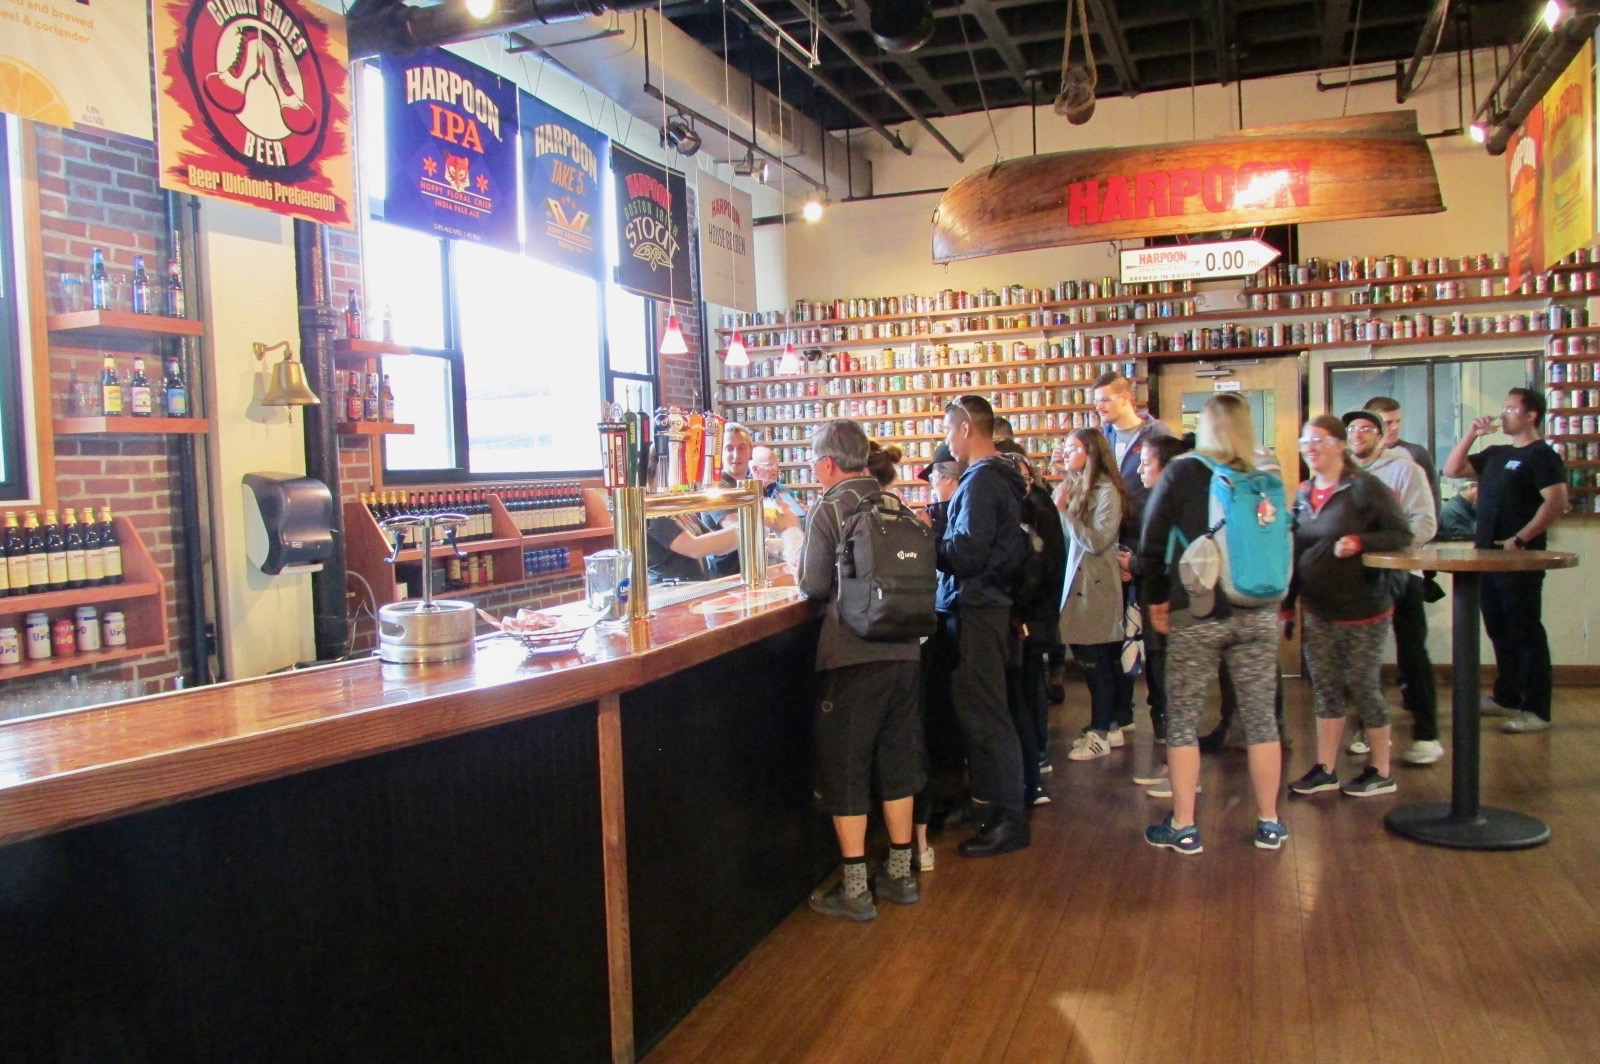 The best part of the Harpoon Tour-- tasting their beers.